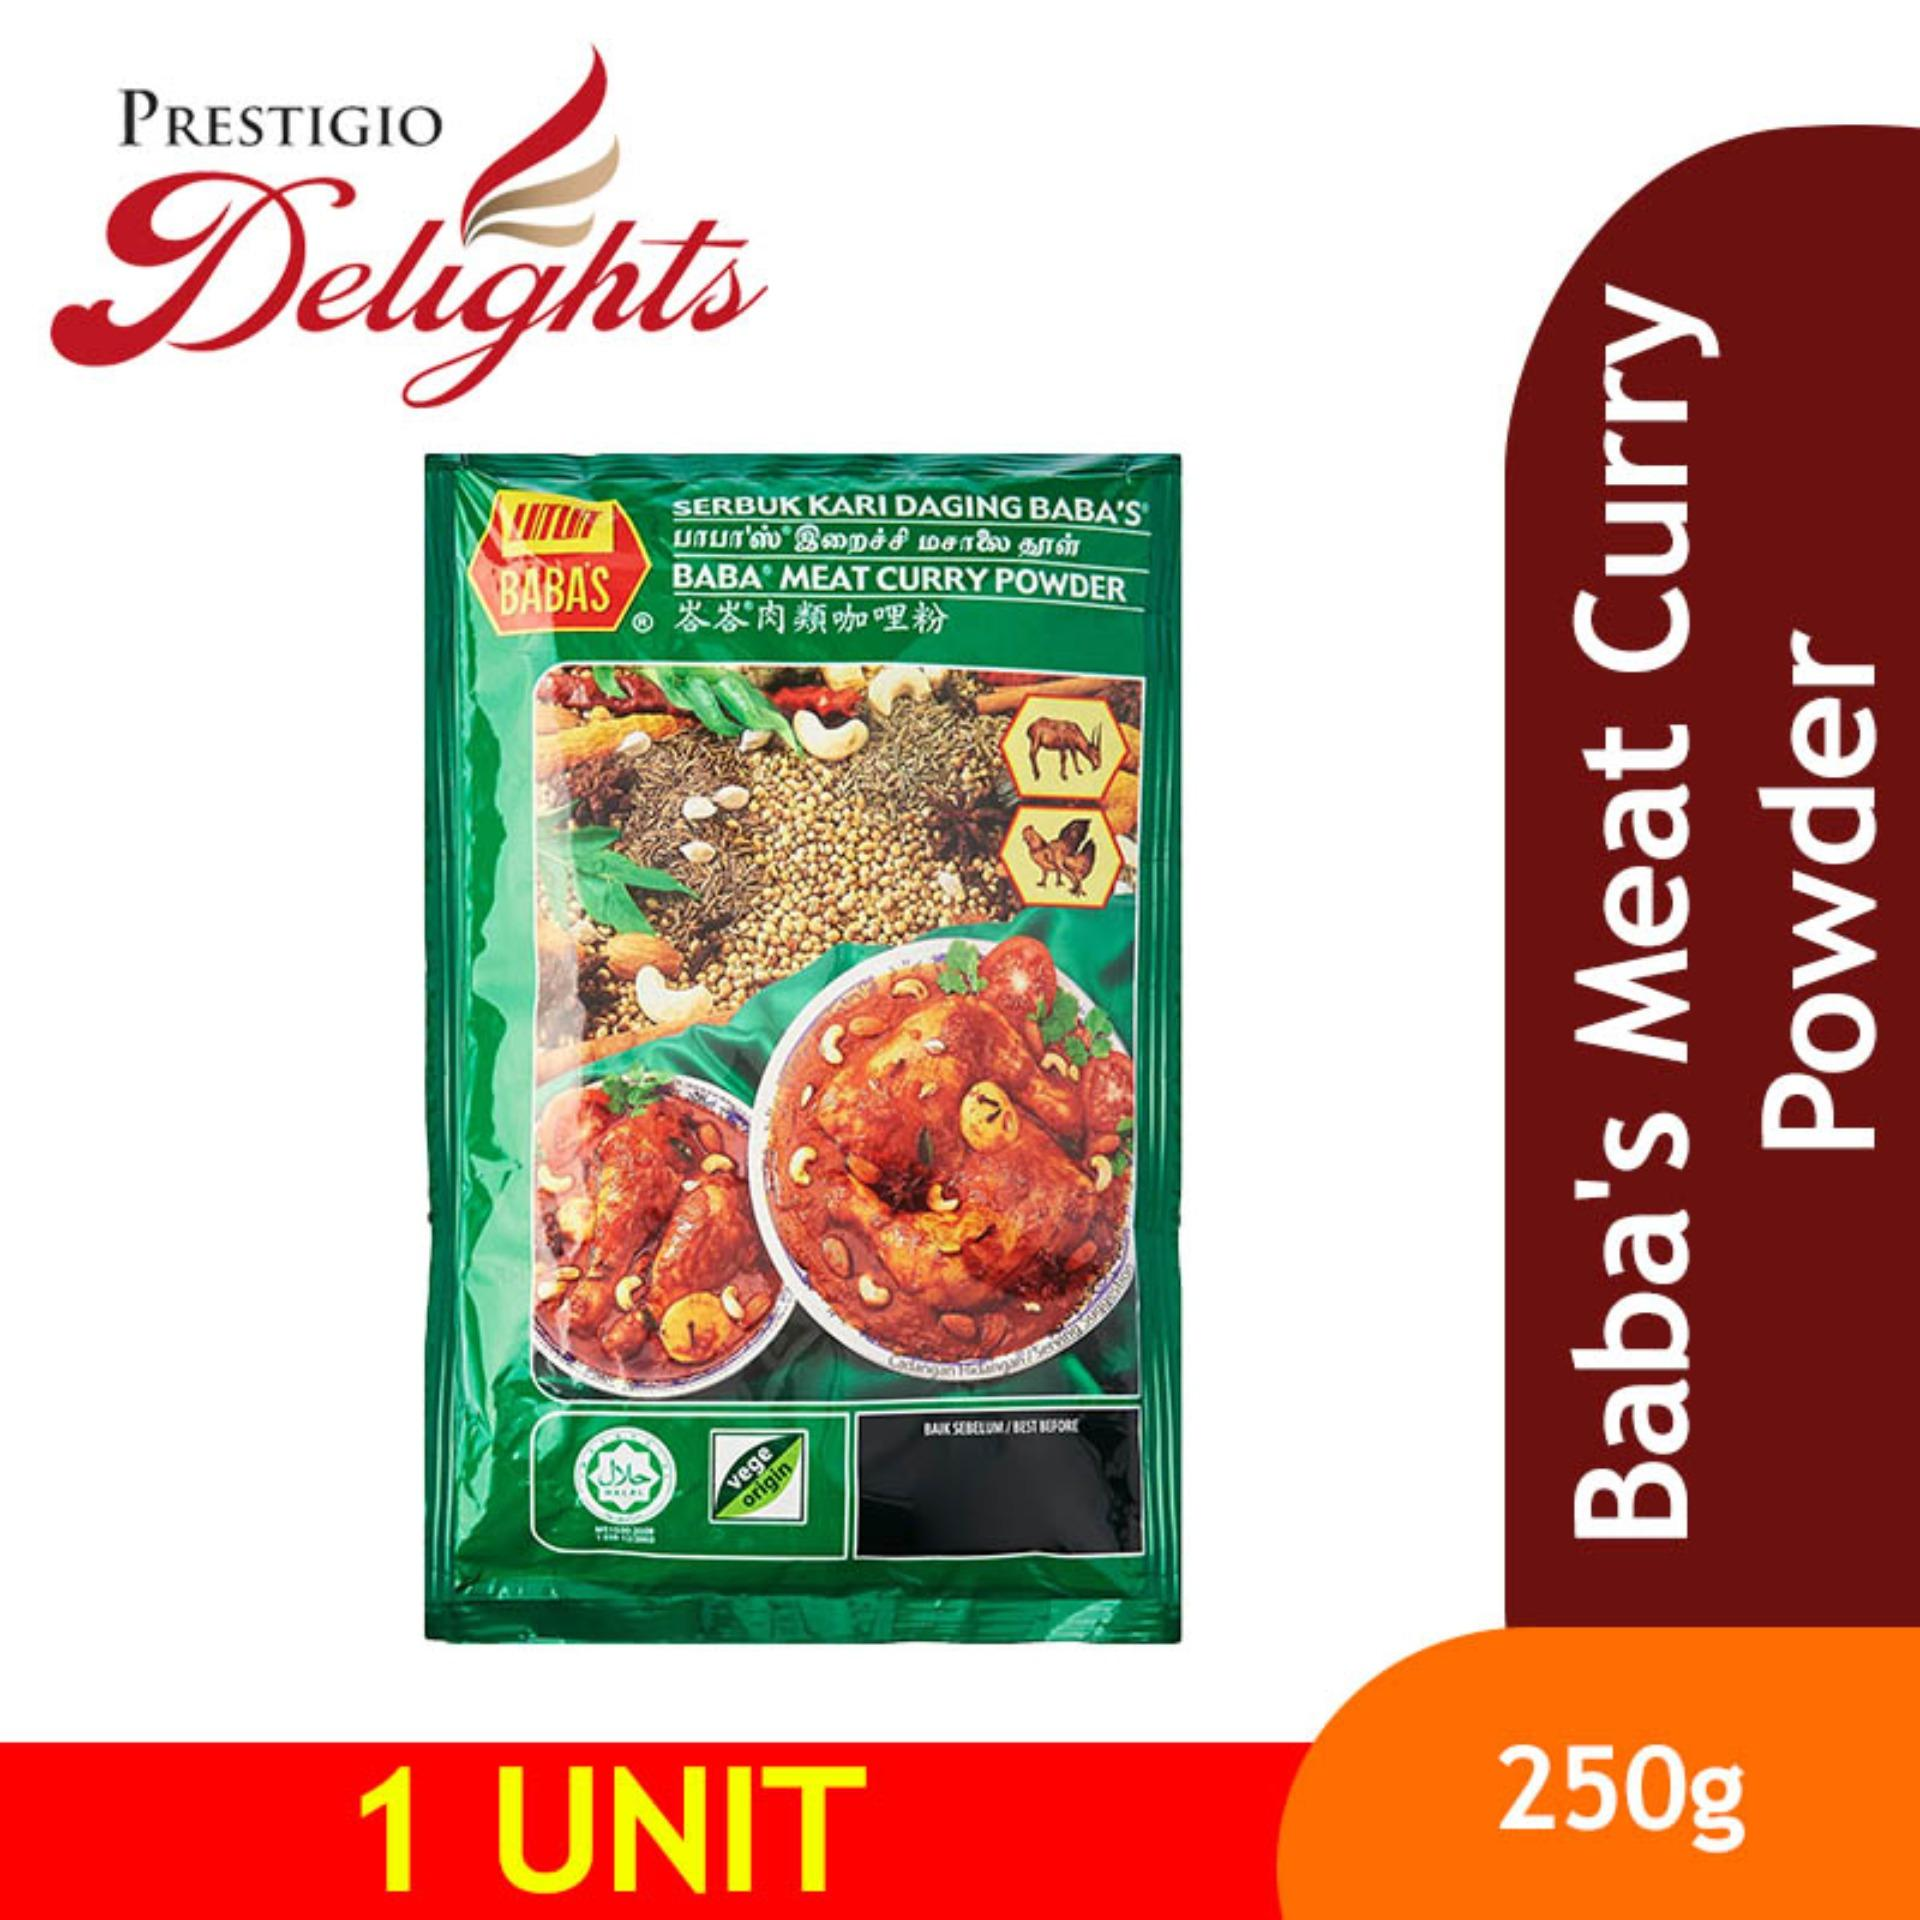 Babas Meat Curry Powder 250g By Prestigio Delights.